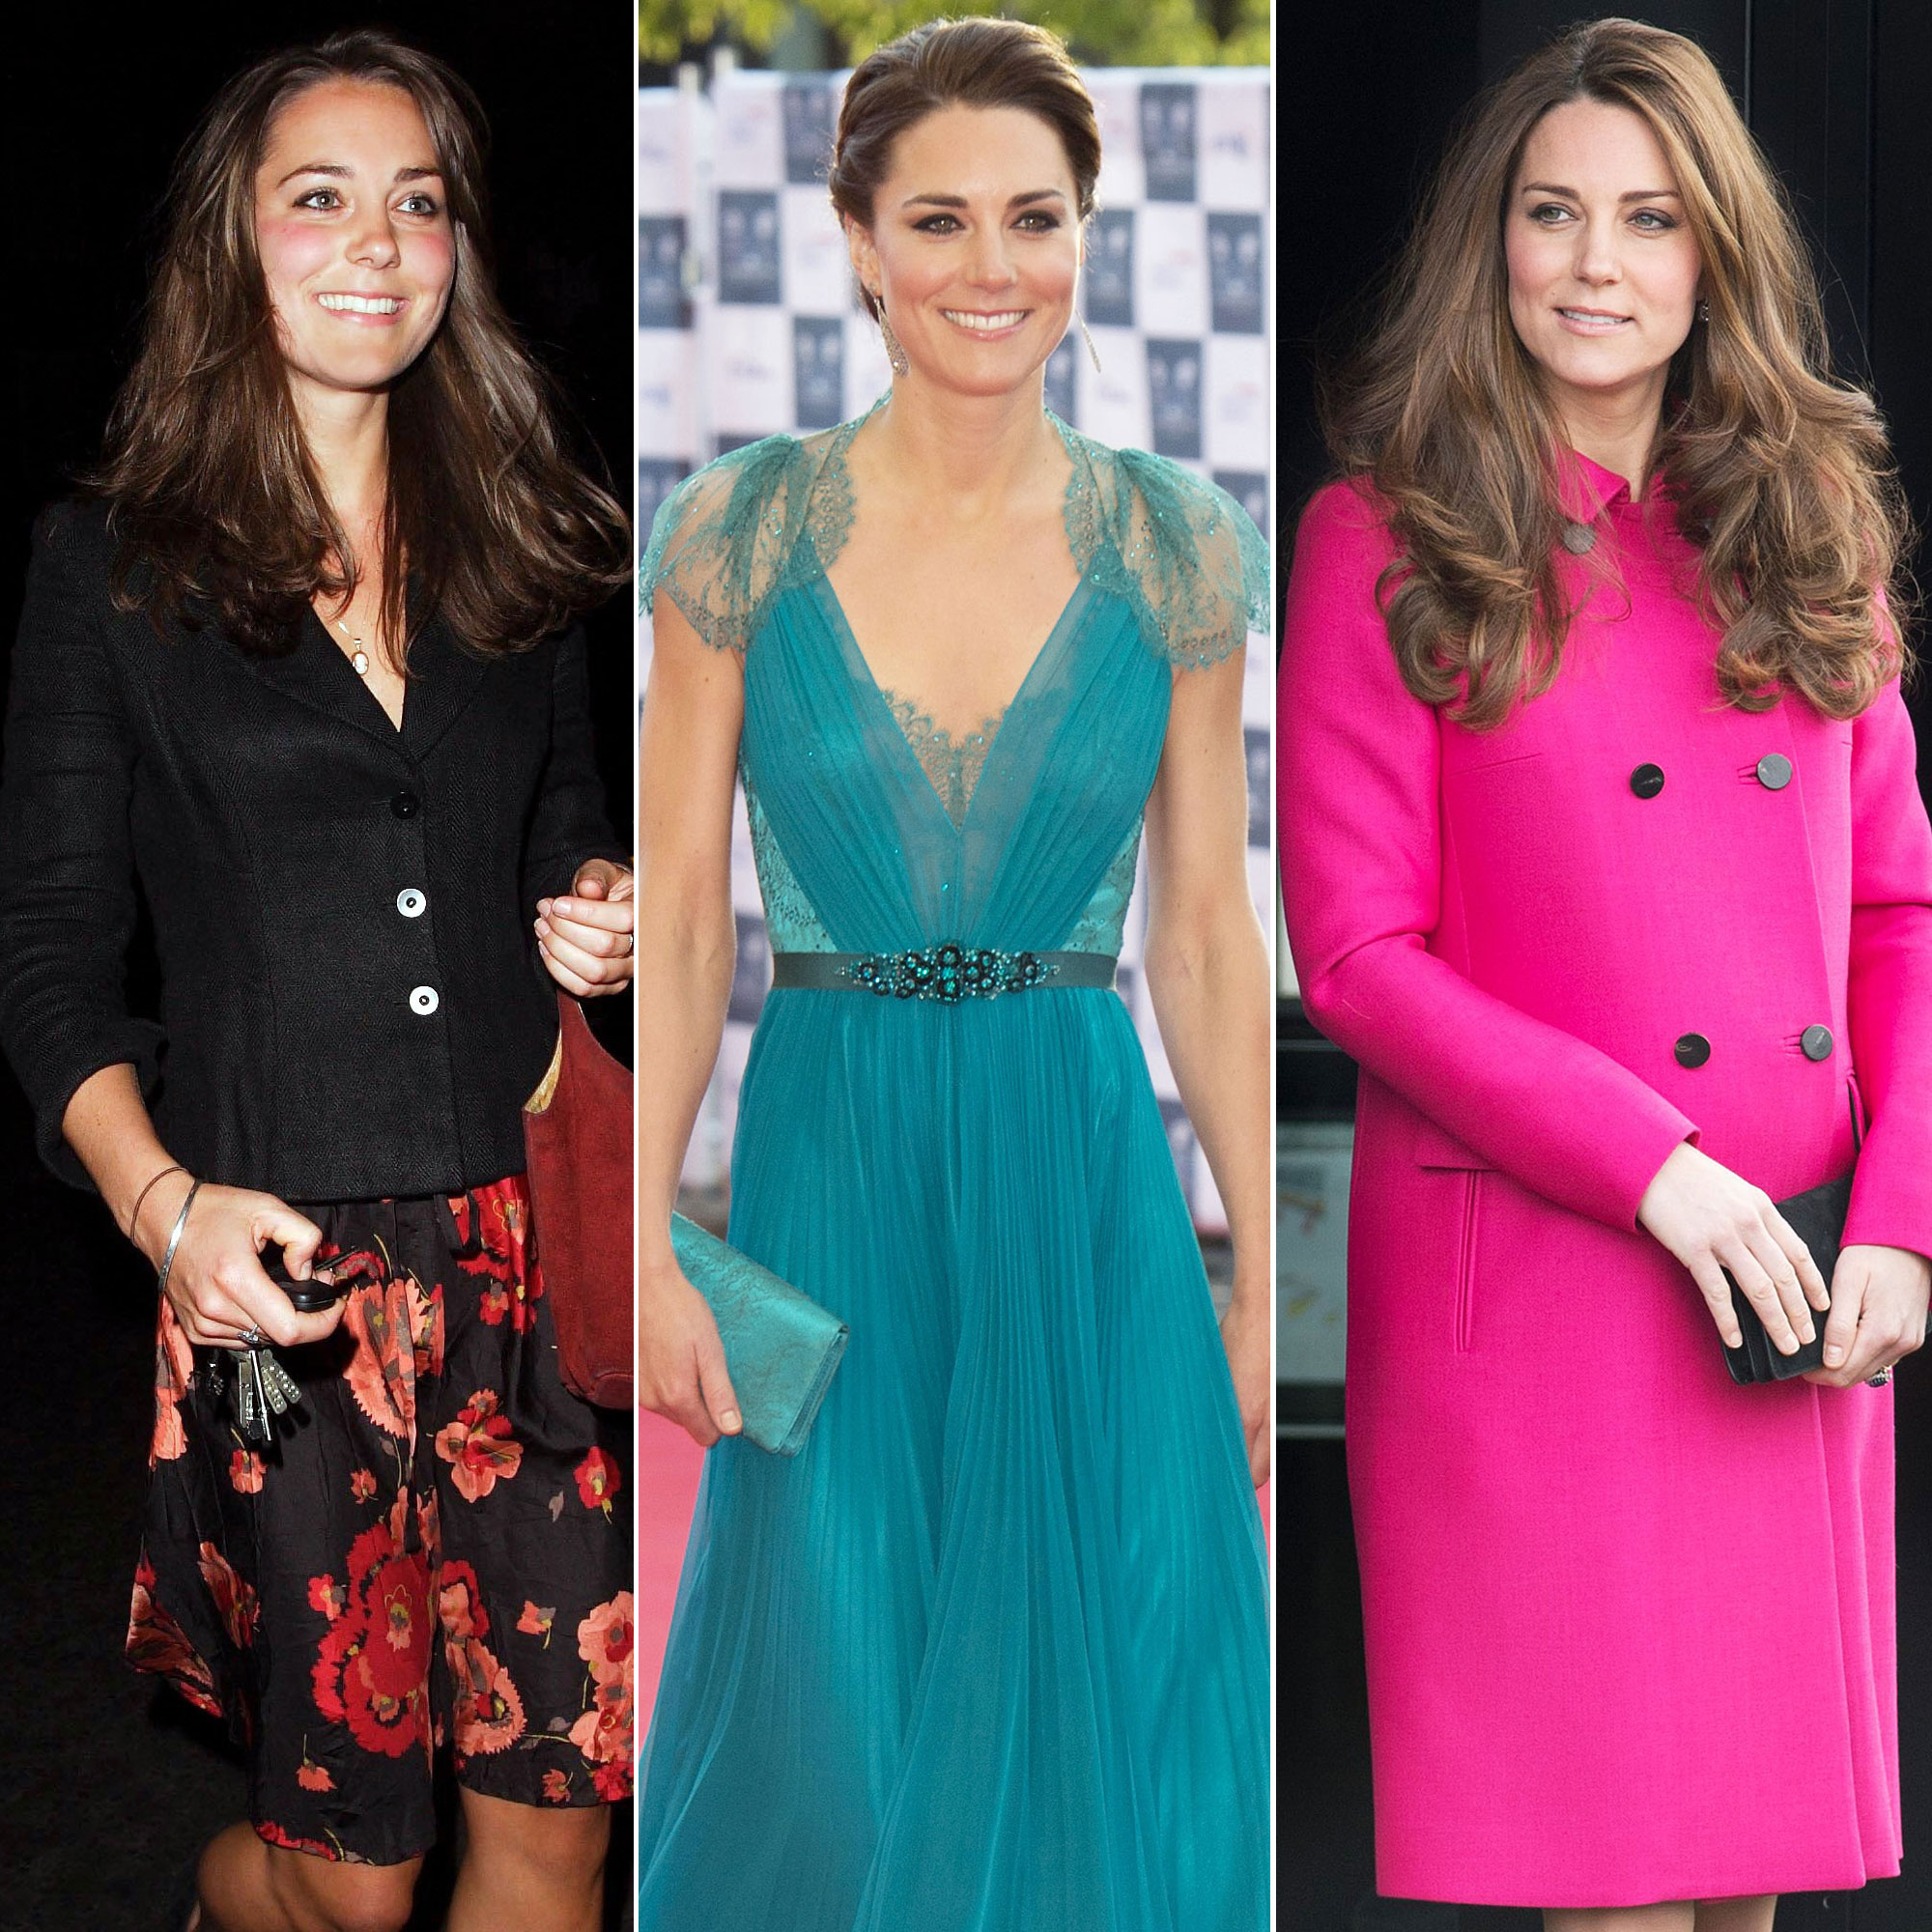 duchess kate s style evolution from university of scotland student to fashion forward princess us weekly duchess kate s style evolution from